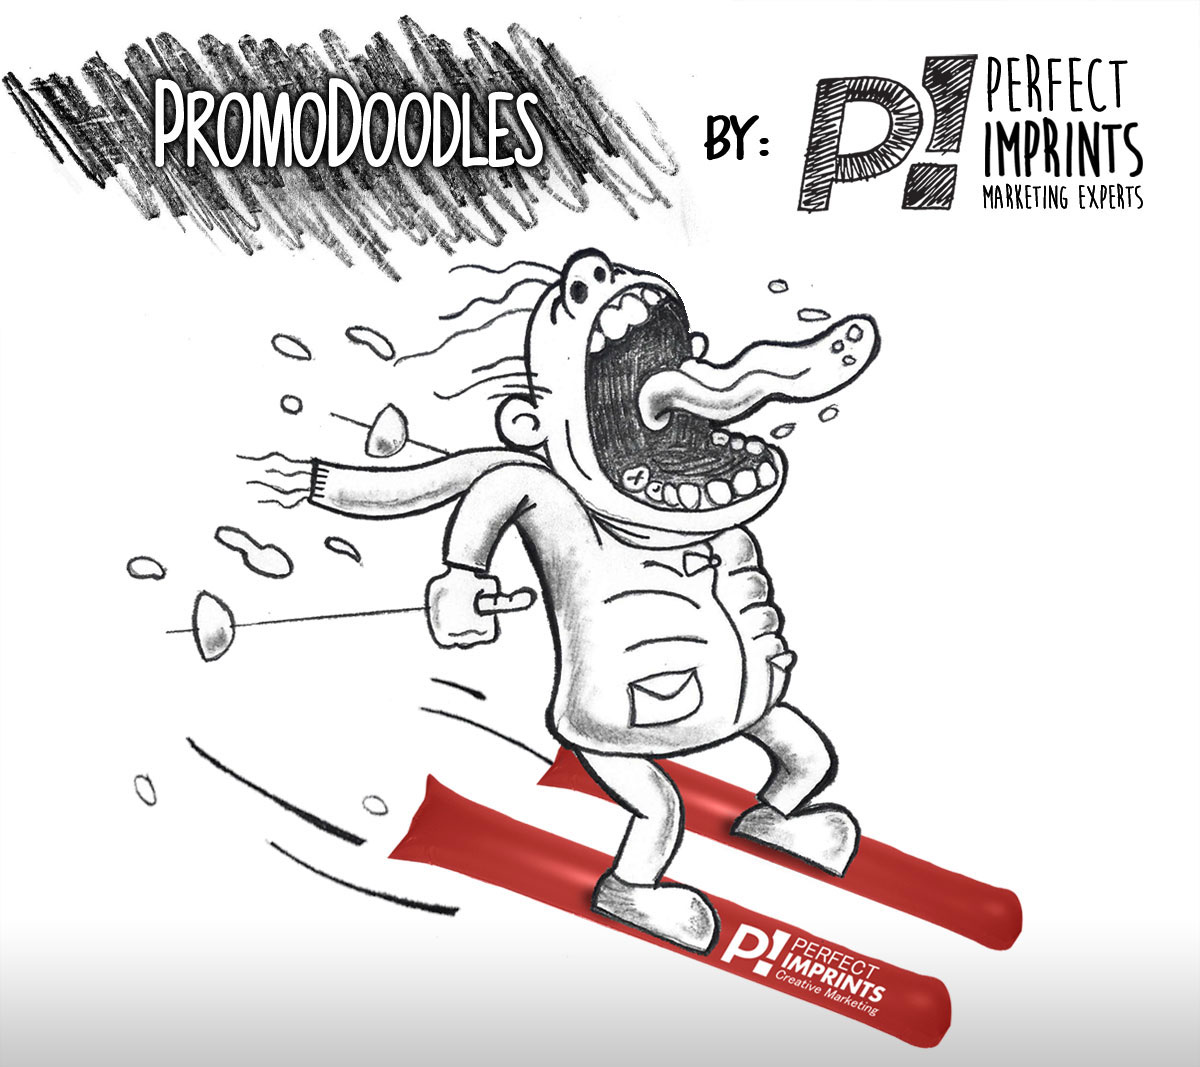 PromoDoodles by Perfect Imprints - Thundersticks